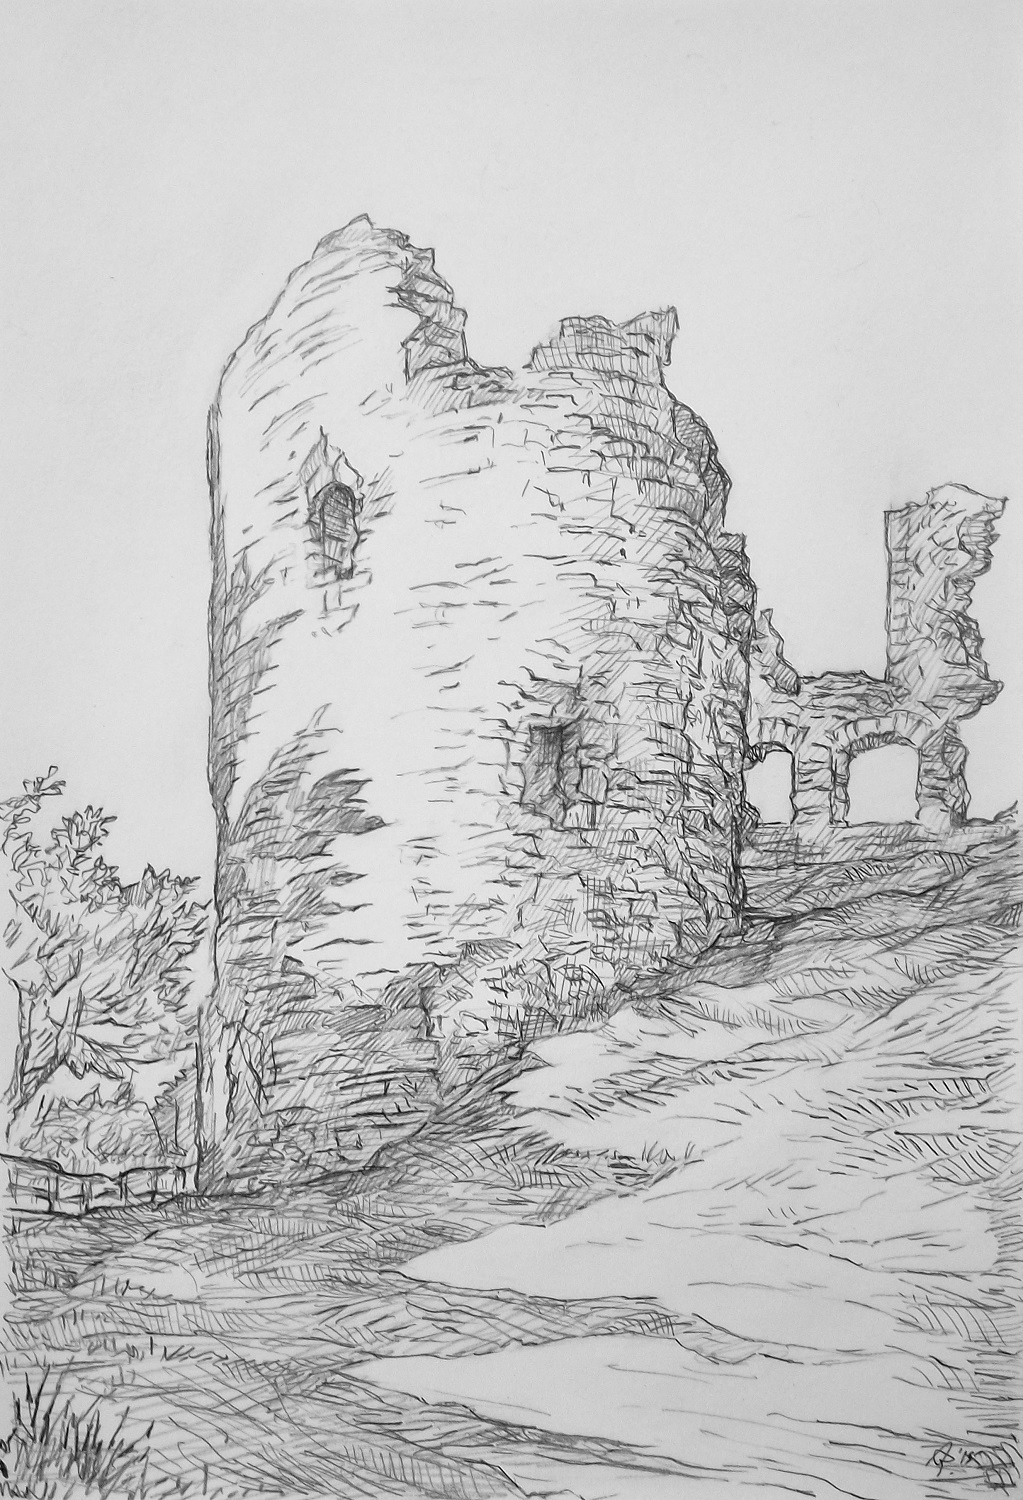 Narberth castle drawing by austen pinkerton